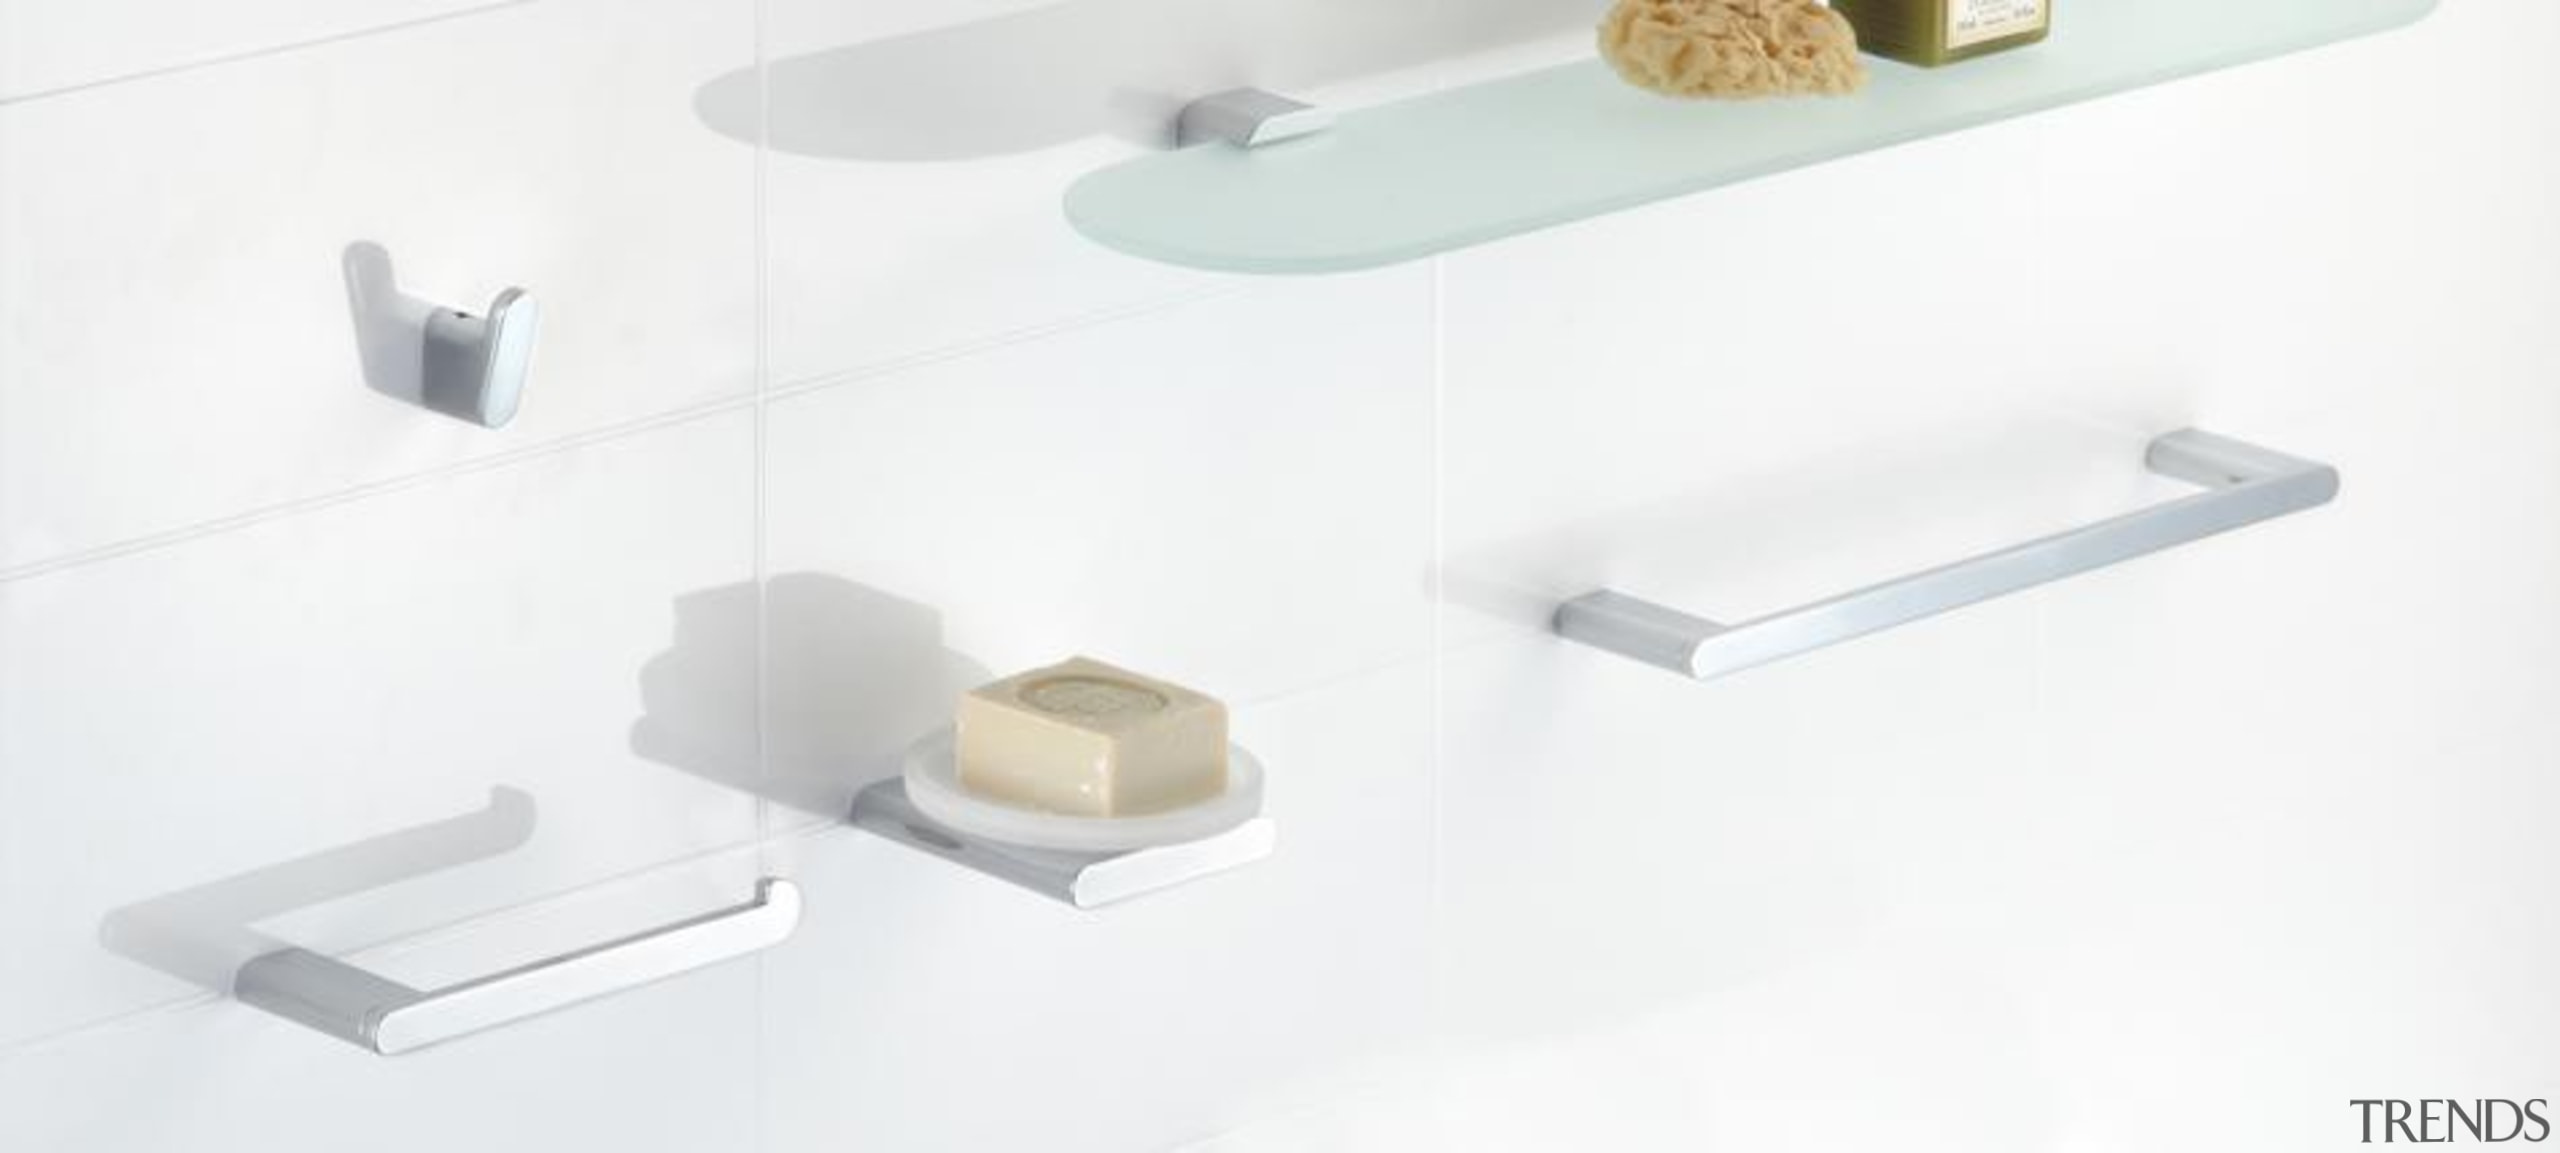 Loft Bathroom Accessories - Loft Bathroom Accessories - angle, furniture, product, product design, shelf, table, tap, white